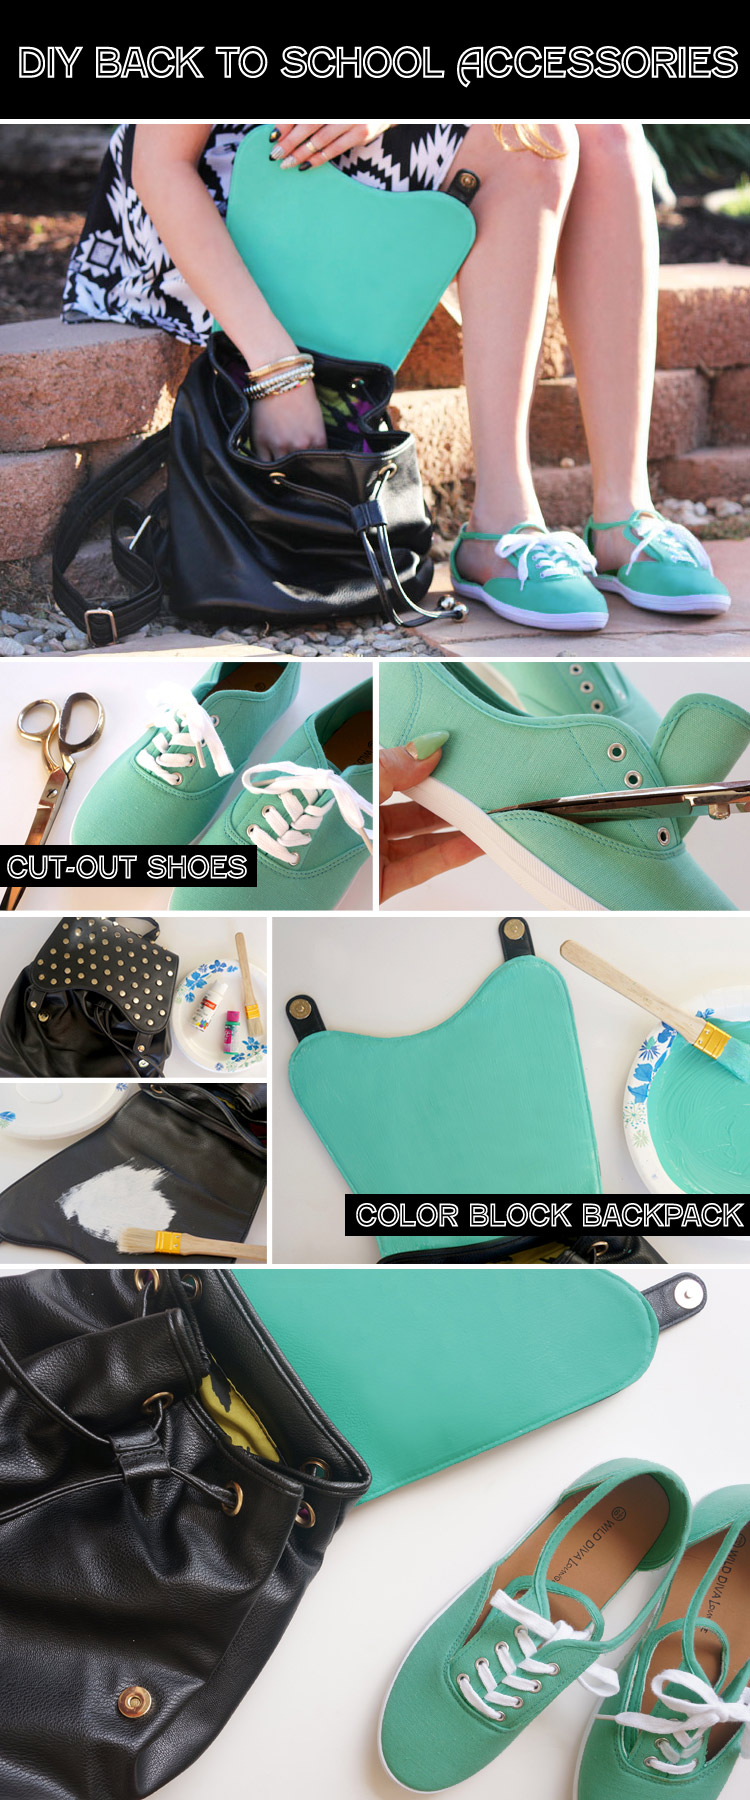 Do It Yourself Home Projects From Ana White: Do It Yourself: Fashionable Ideas